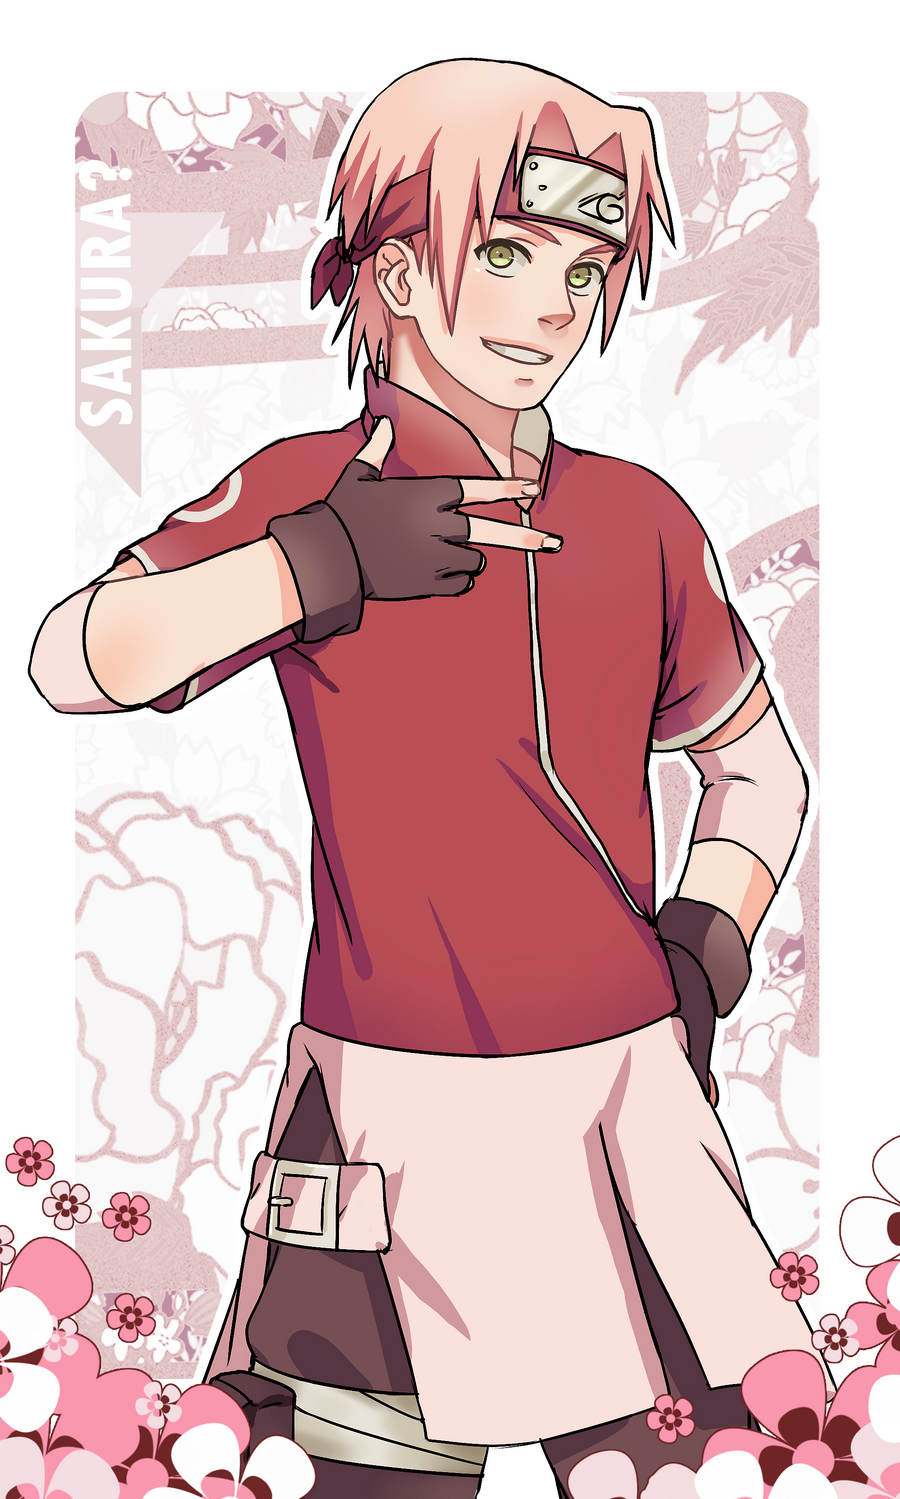 1000+ images about Gender Bender on Pinterest | Gender bender, Naruto and Hitman reborn